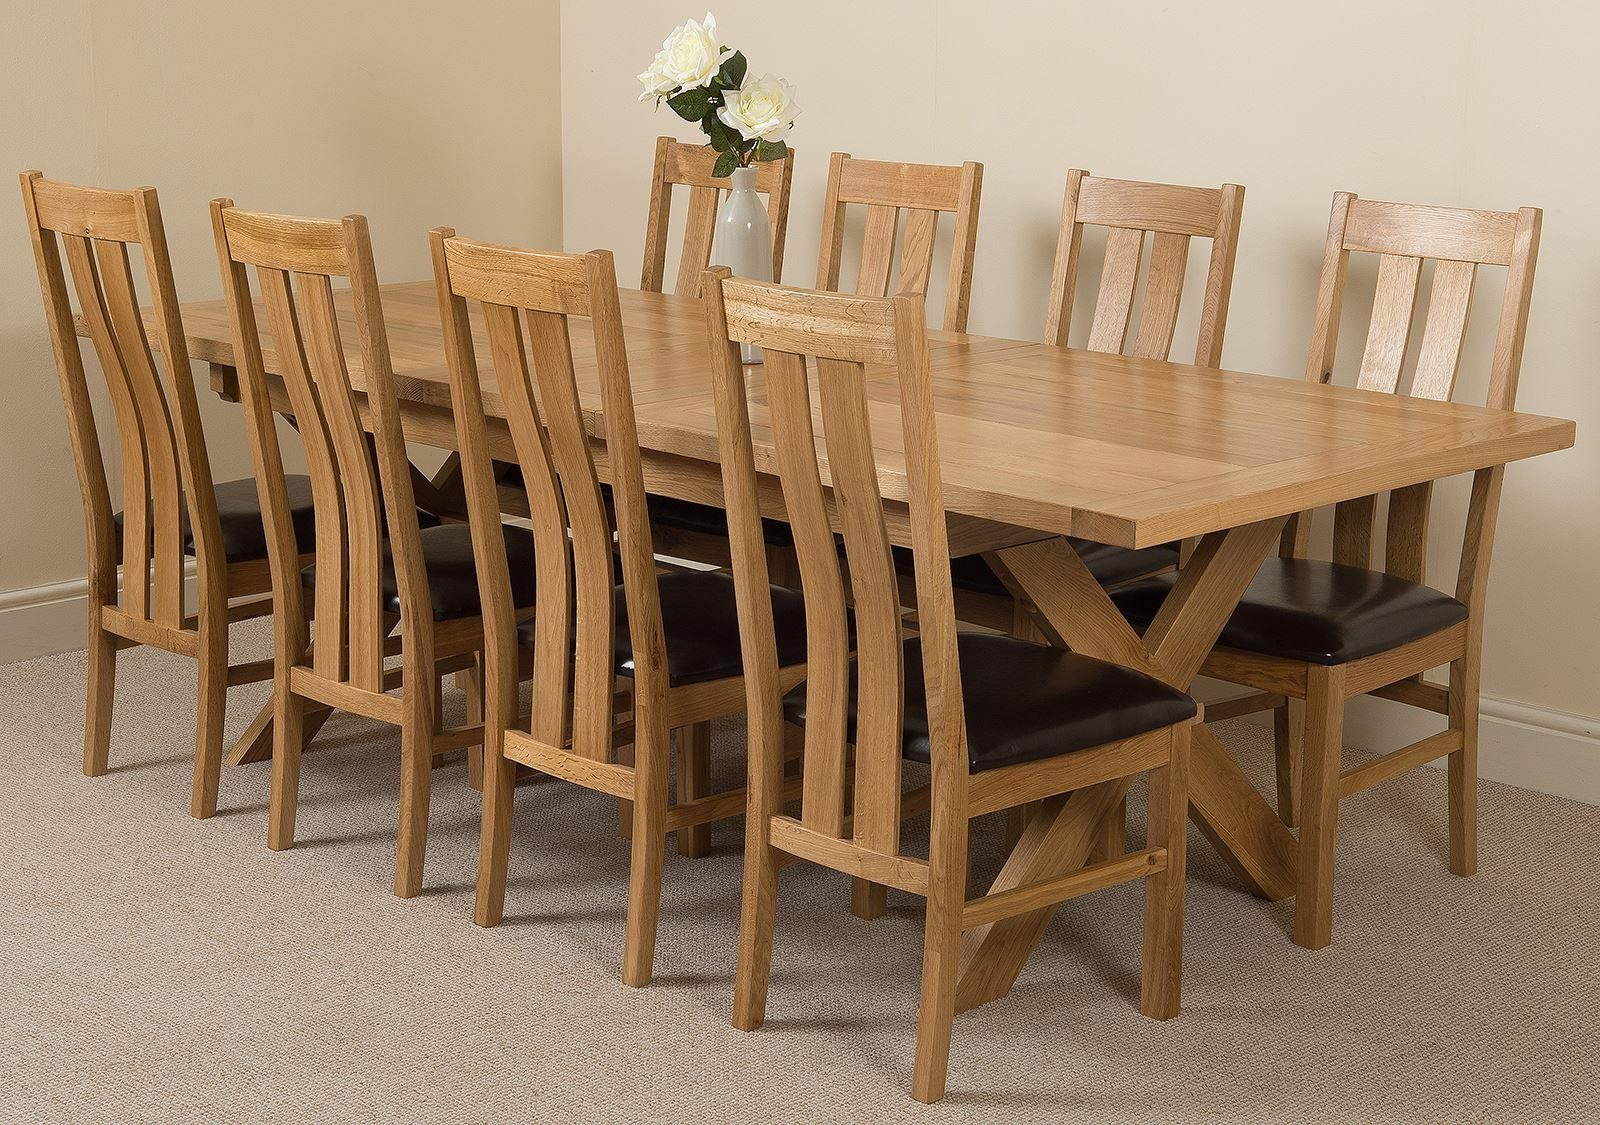 Vermont Solid Oak 200cm-240cm Crossed Leg Extending Dining Table with 8 Princeton Solid Oak Dining Chairs [Light Oak and Brown Leather]